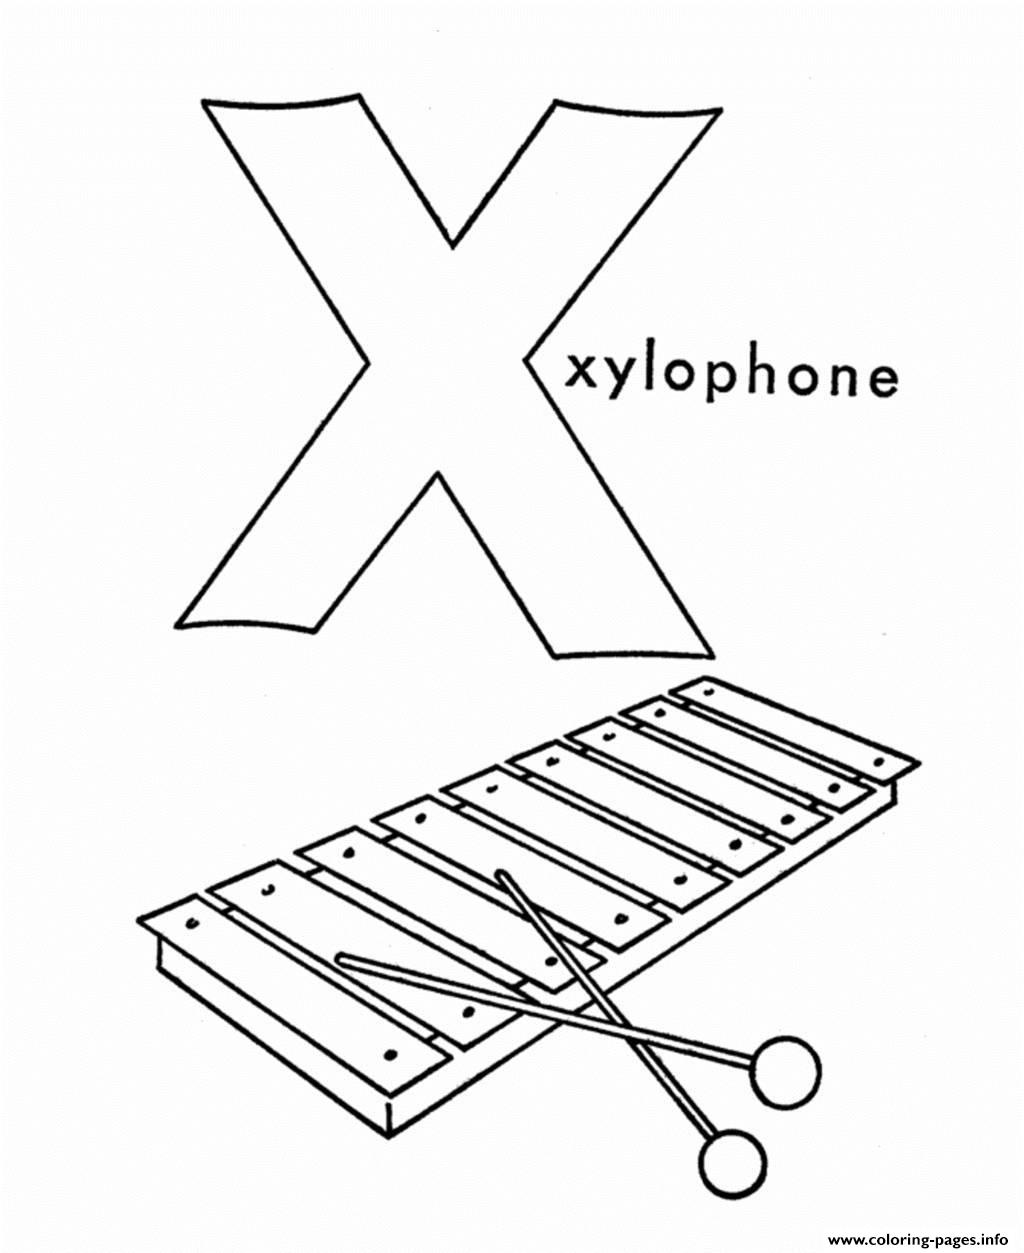 Alphabet S Xylophone53f4 Coloring Pages Printable